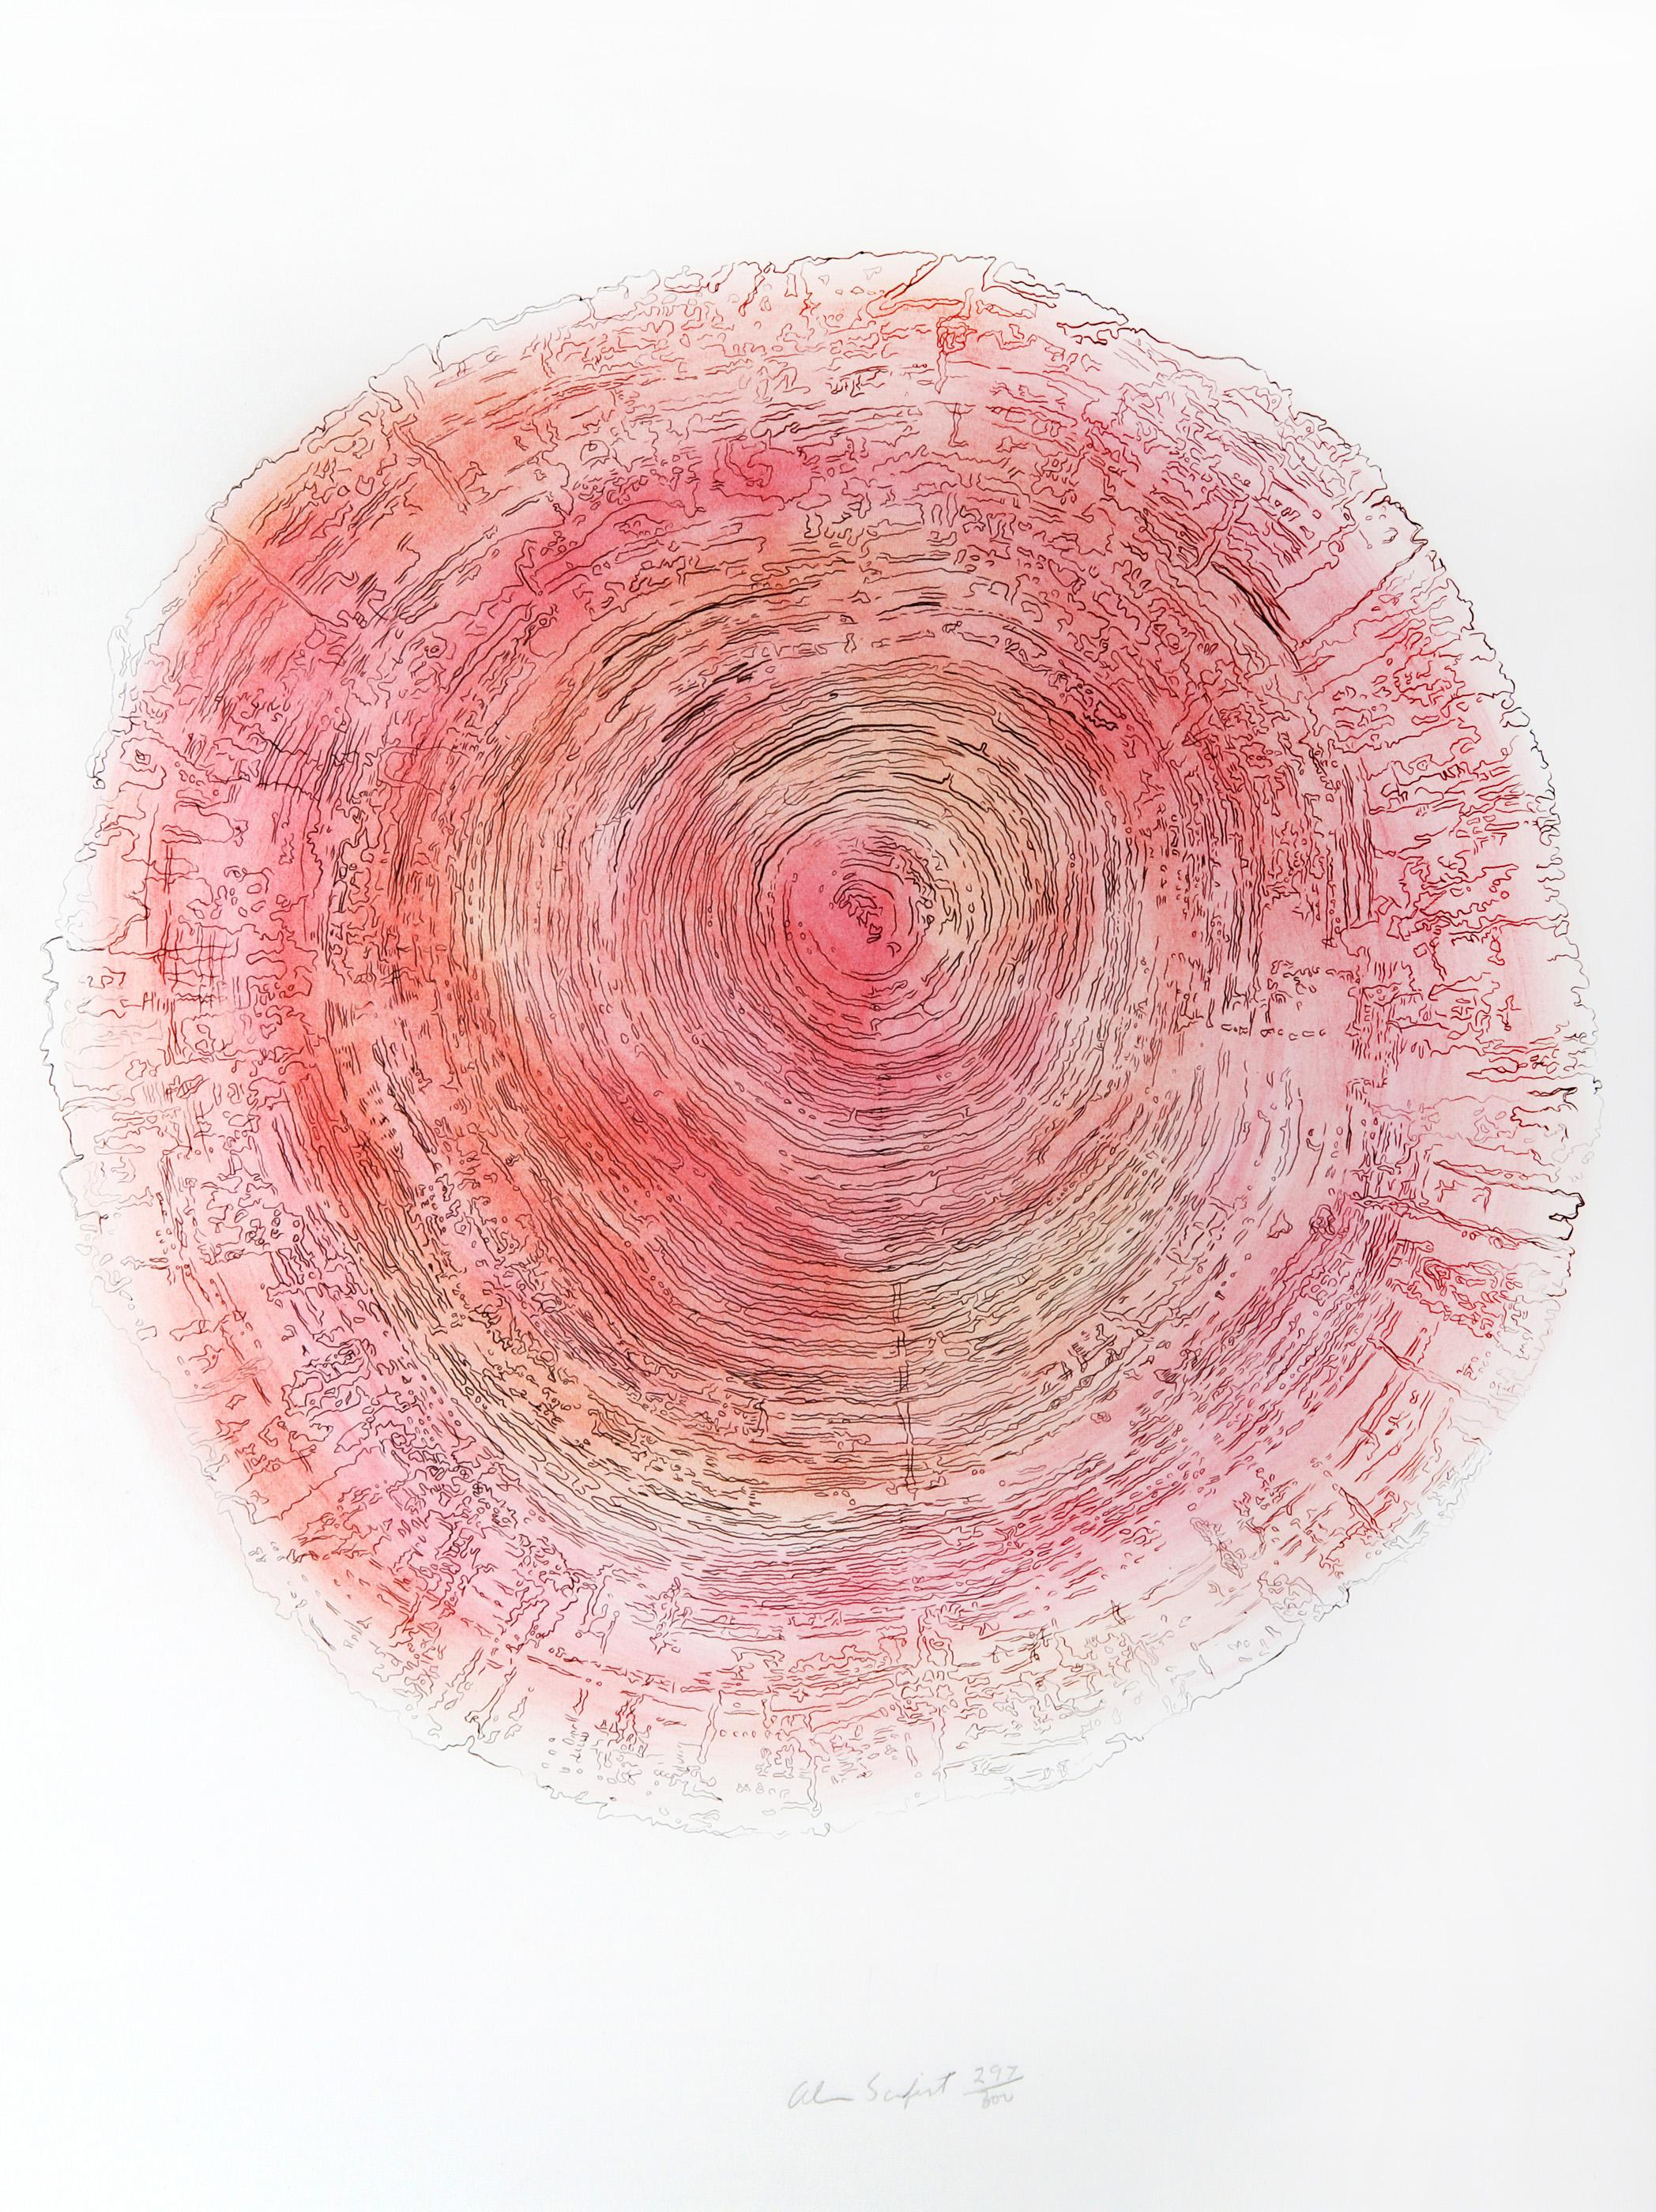 Alan Sonfist, Tree Trunk Series - Pink I, Lithograph